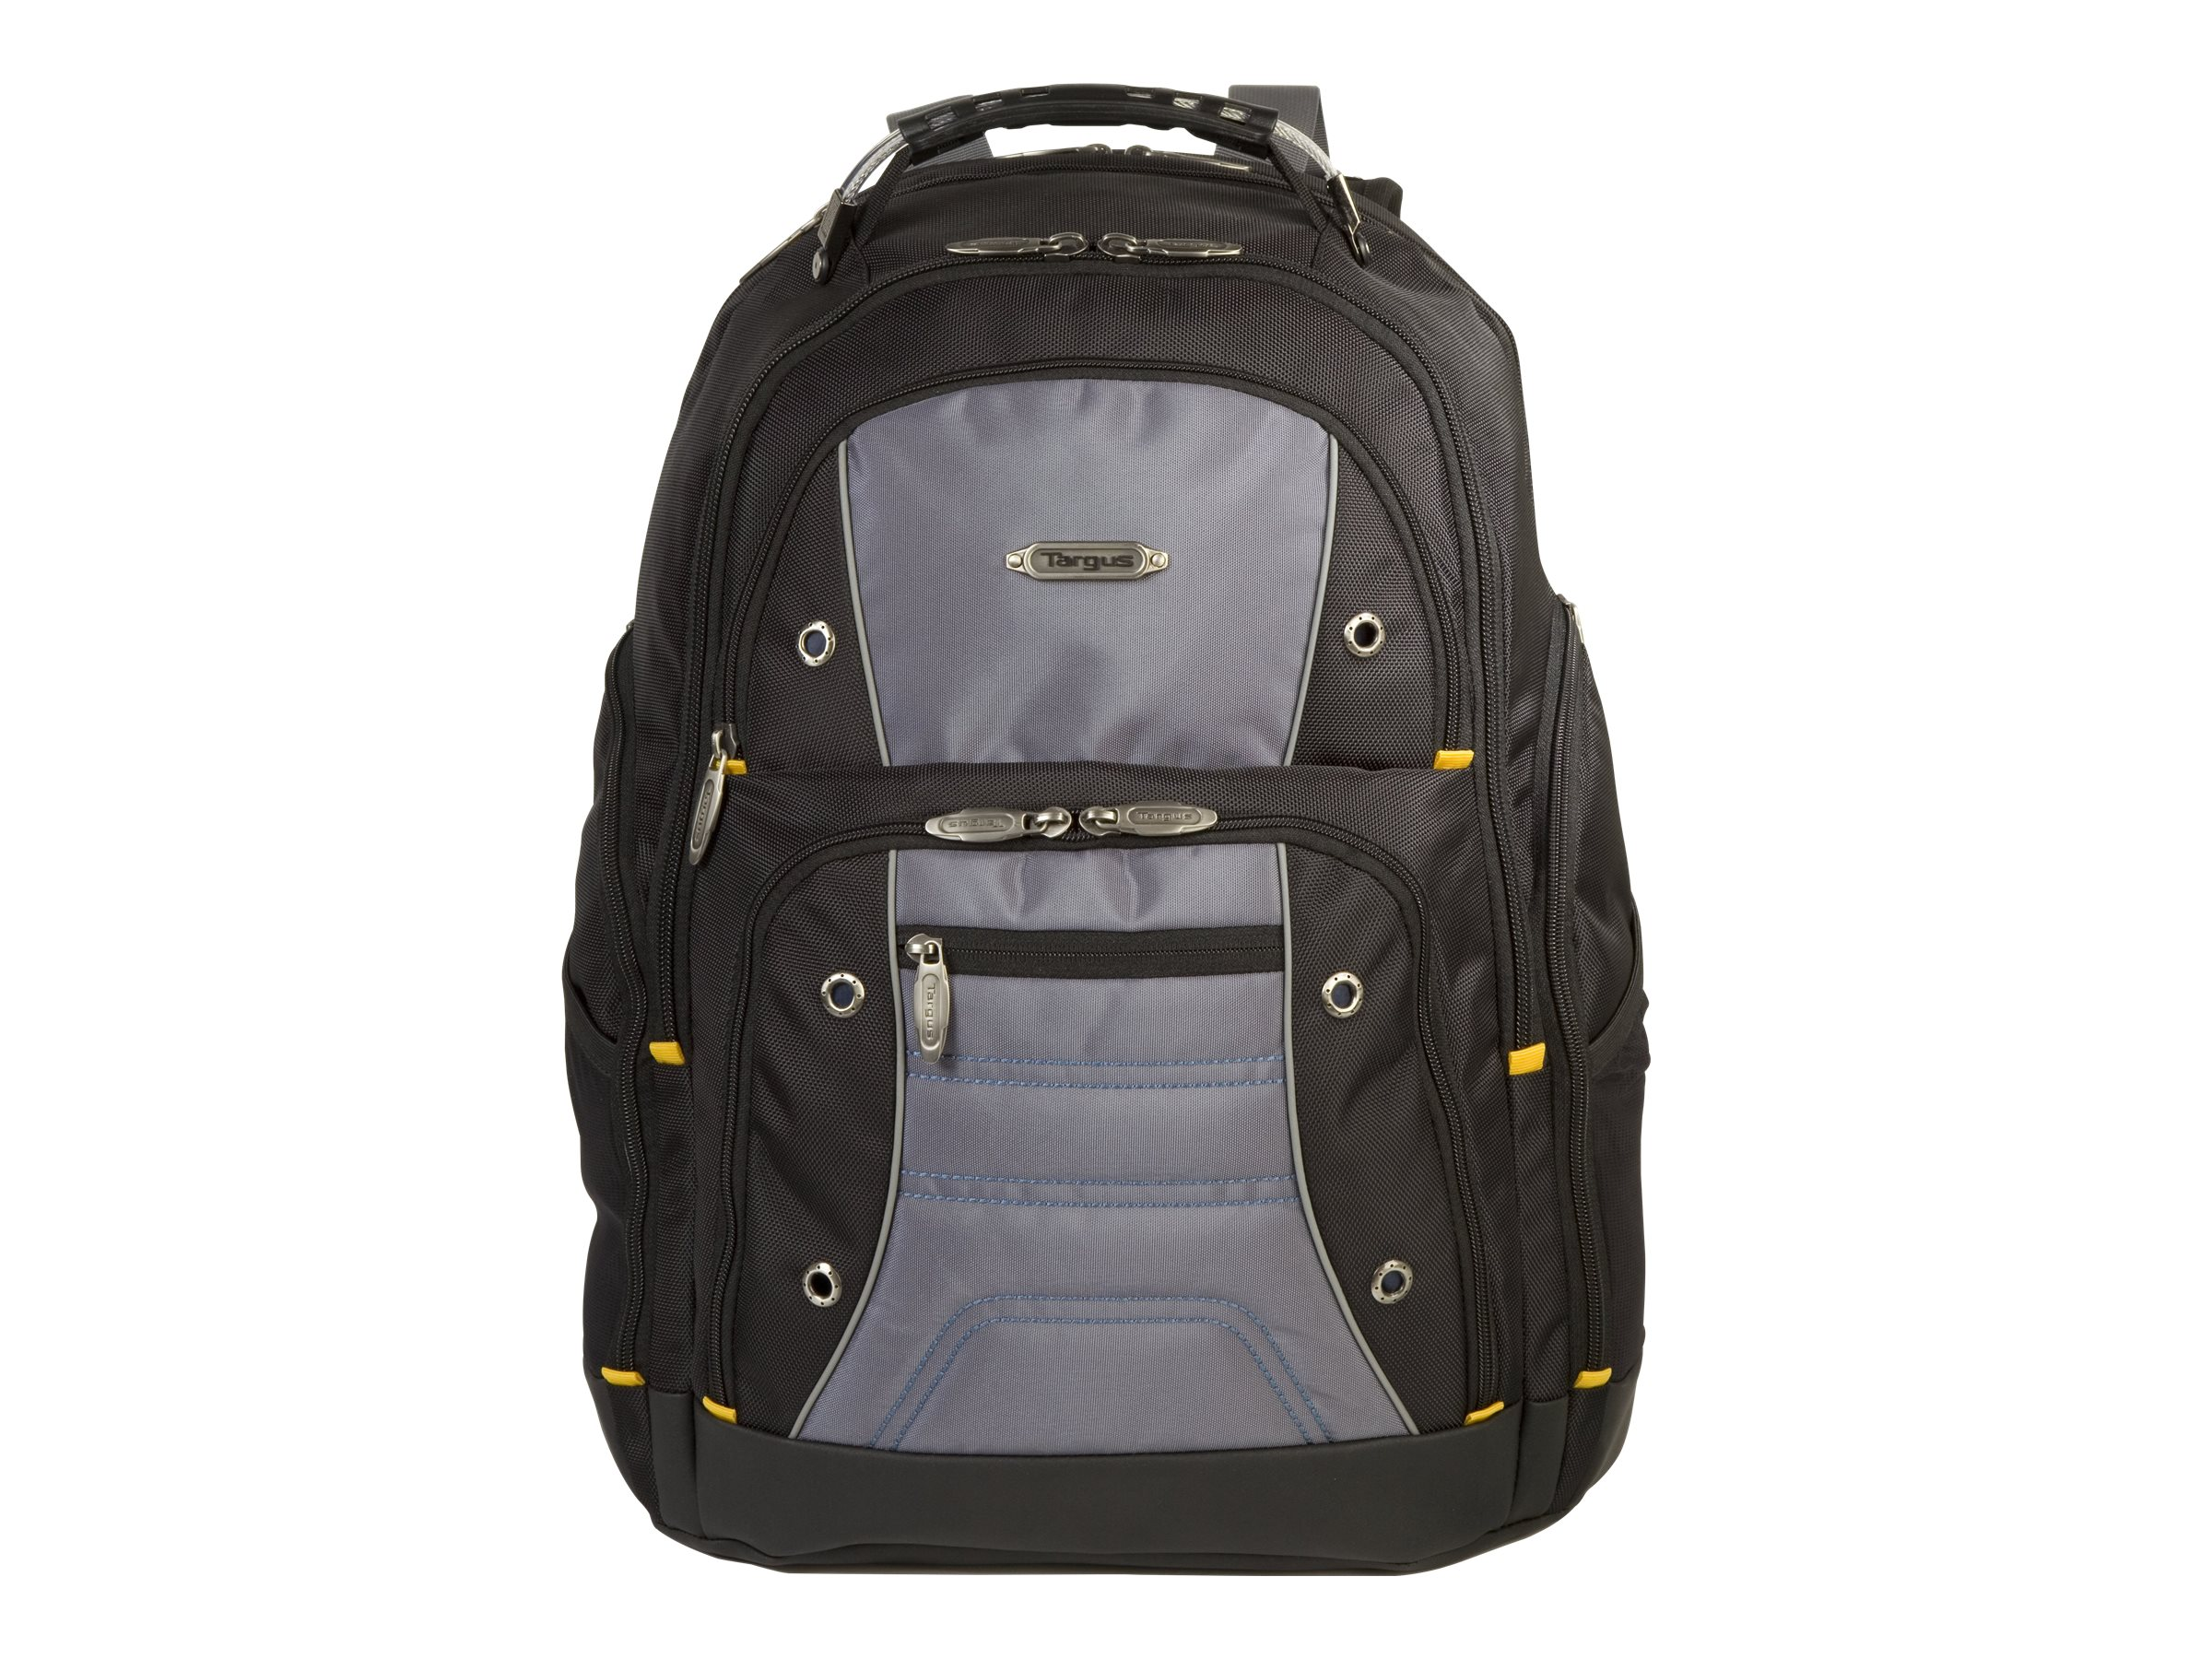 Targus Drifter II Backpack, Black with Colored Trim